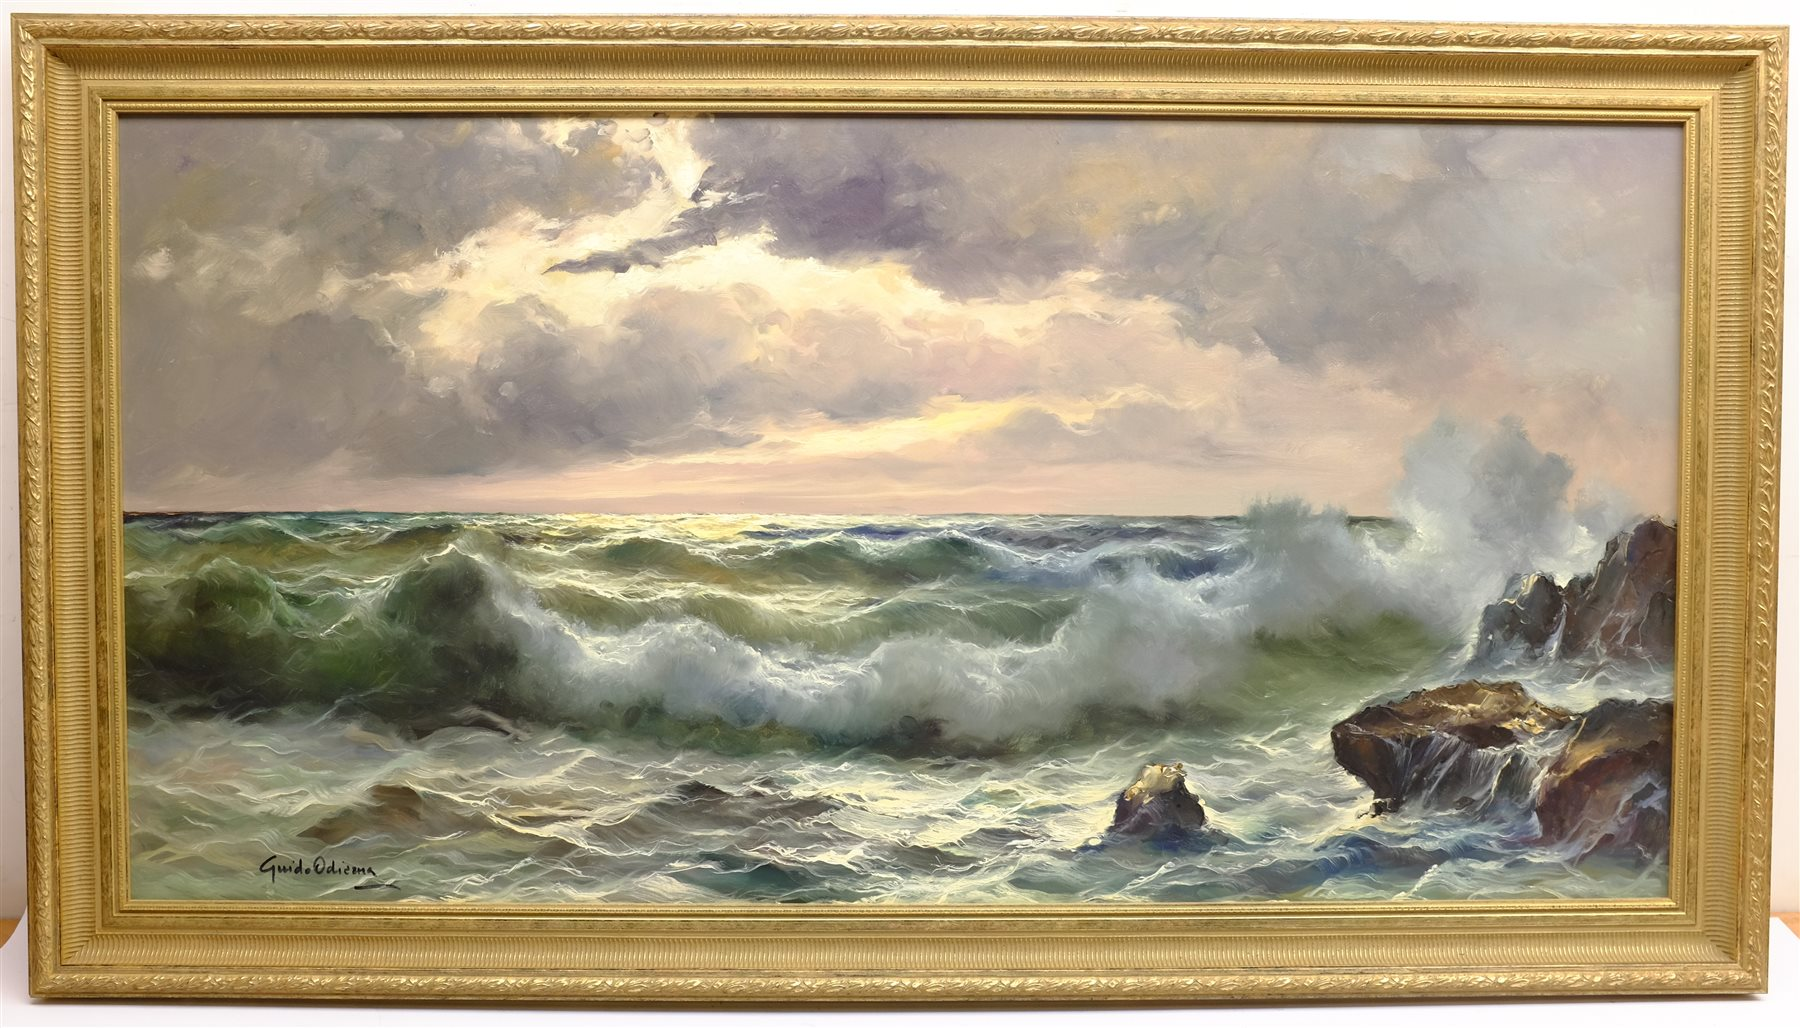 Guido Odierna (Italian 1913-1991): Waves Breaking on the Shore at Twilight, oil on canvas signed 59c - Image 3 of 4